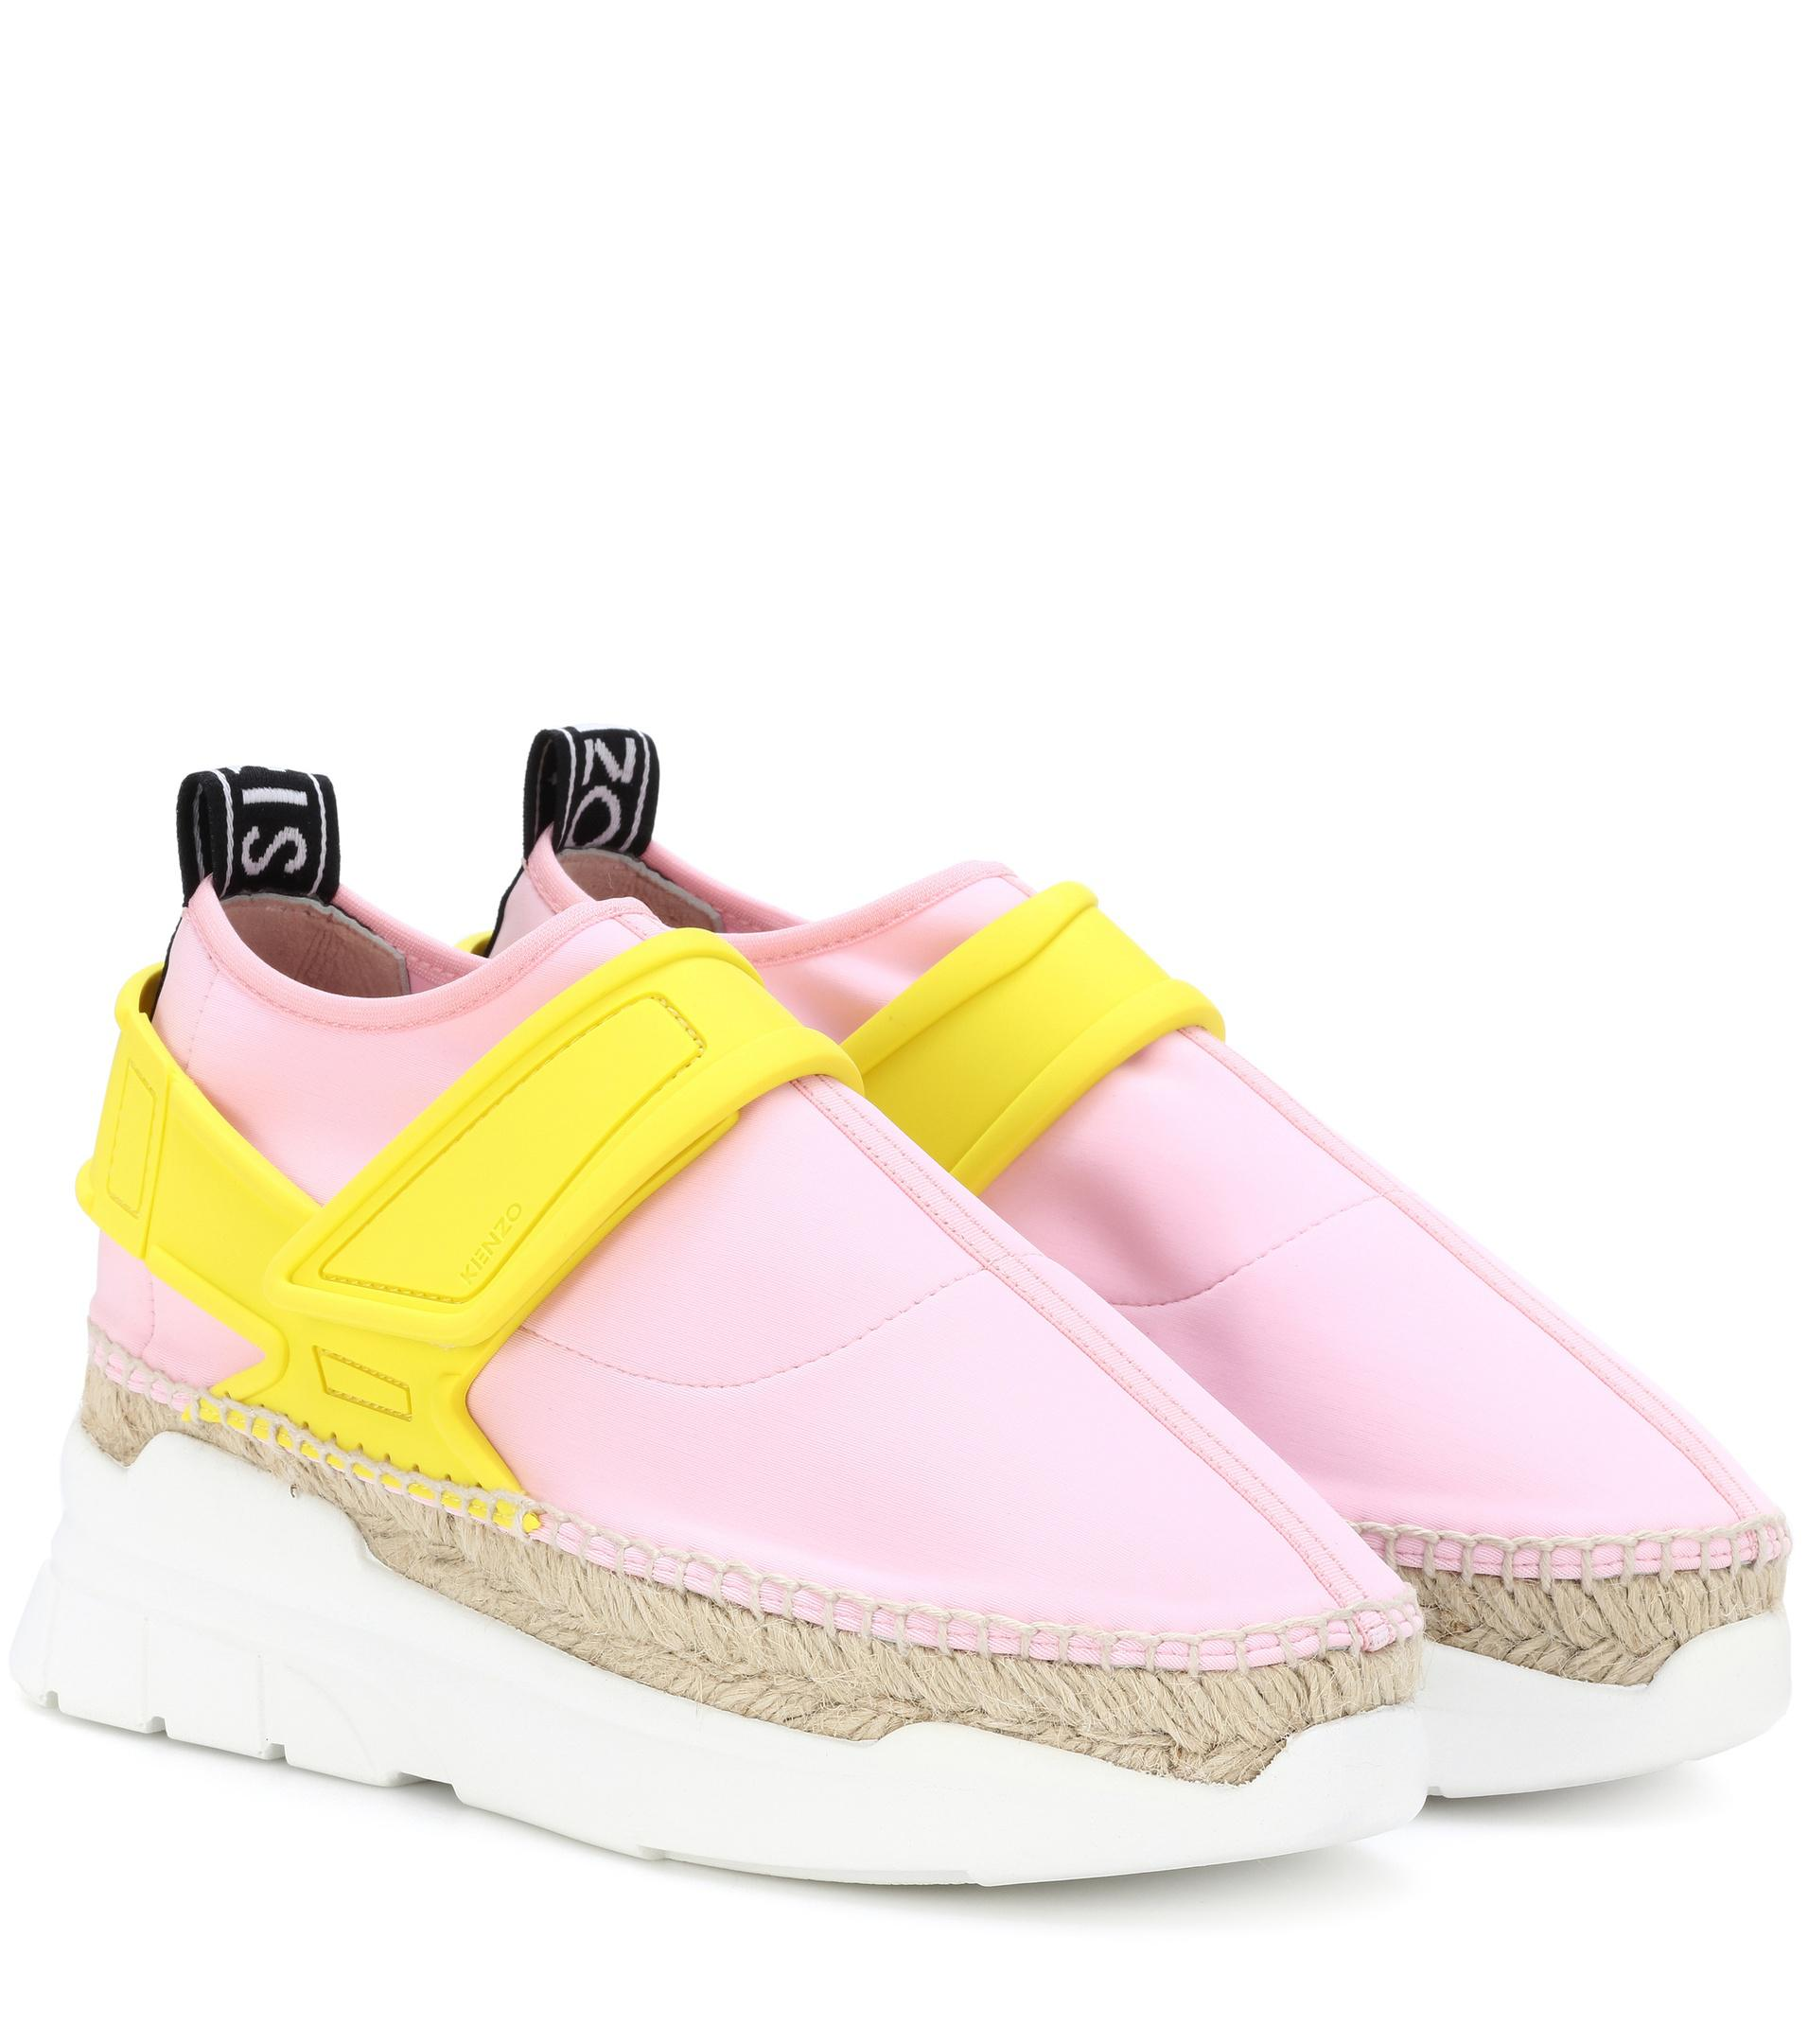 Sneakers Pink Espadrille Kenzo K Lastic L4A5Rj